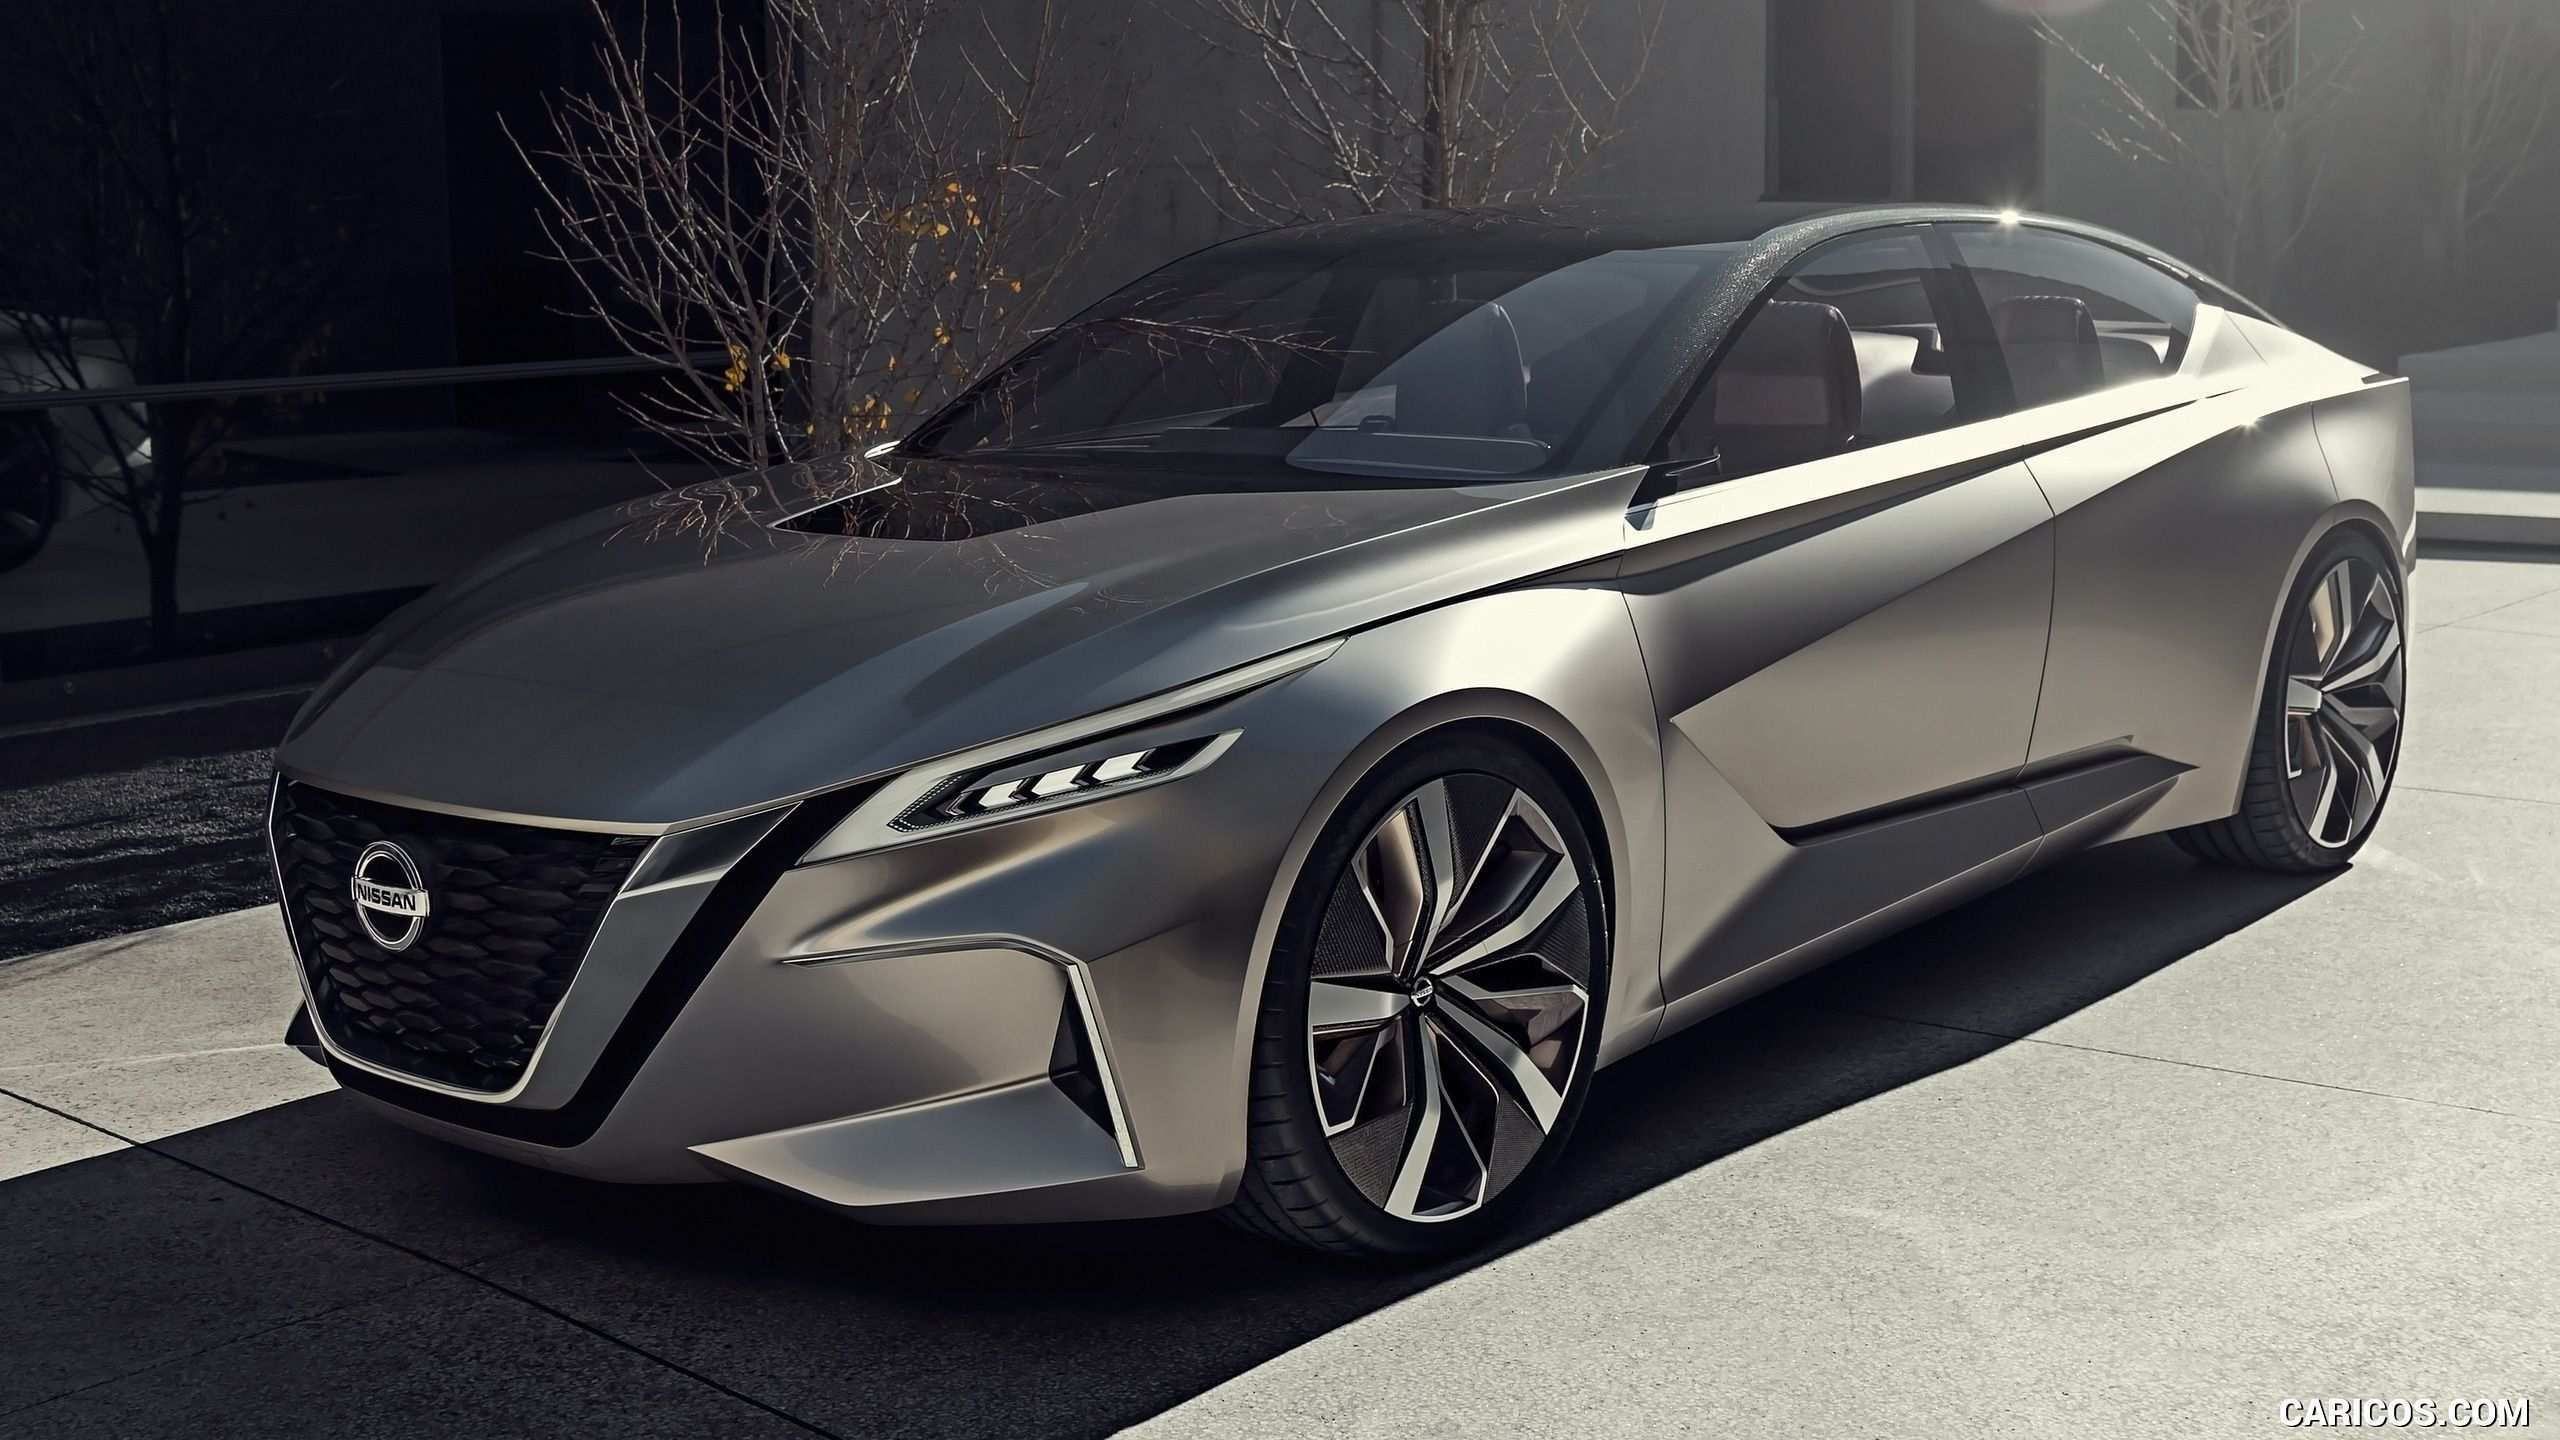 32 New 2020 Nissan Altima Pictures Redesign and Concept with 2020 Nissan Altima Pictures